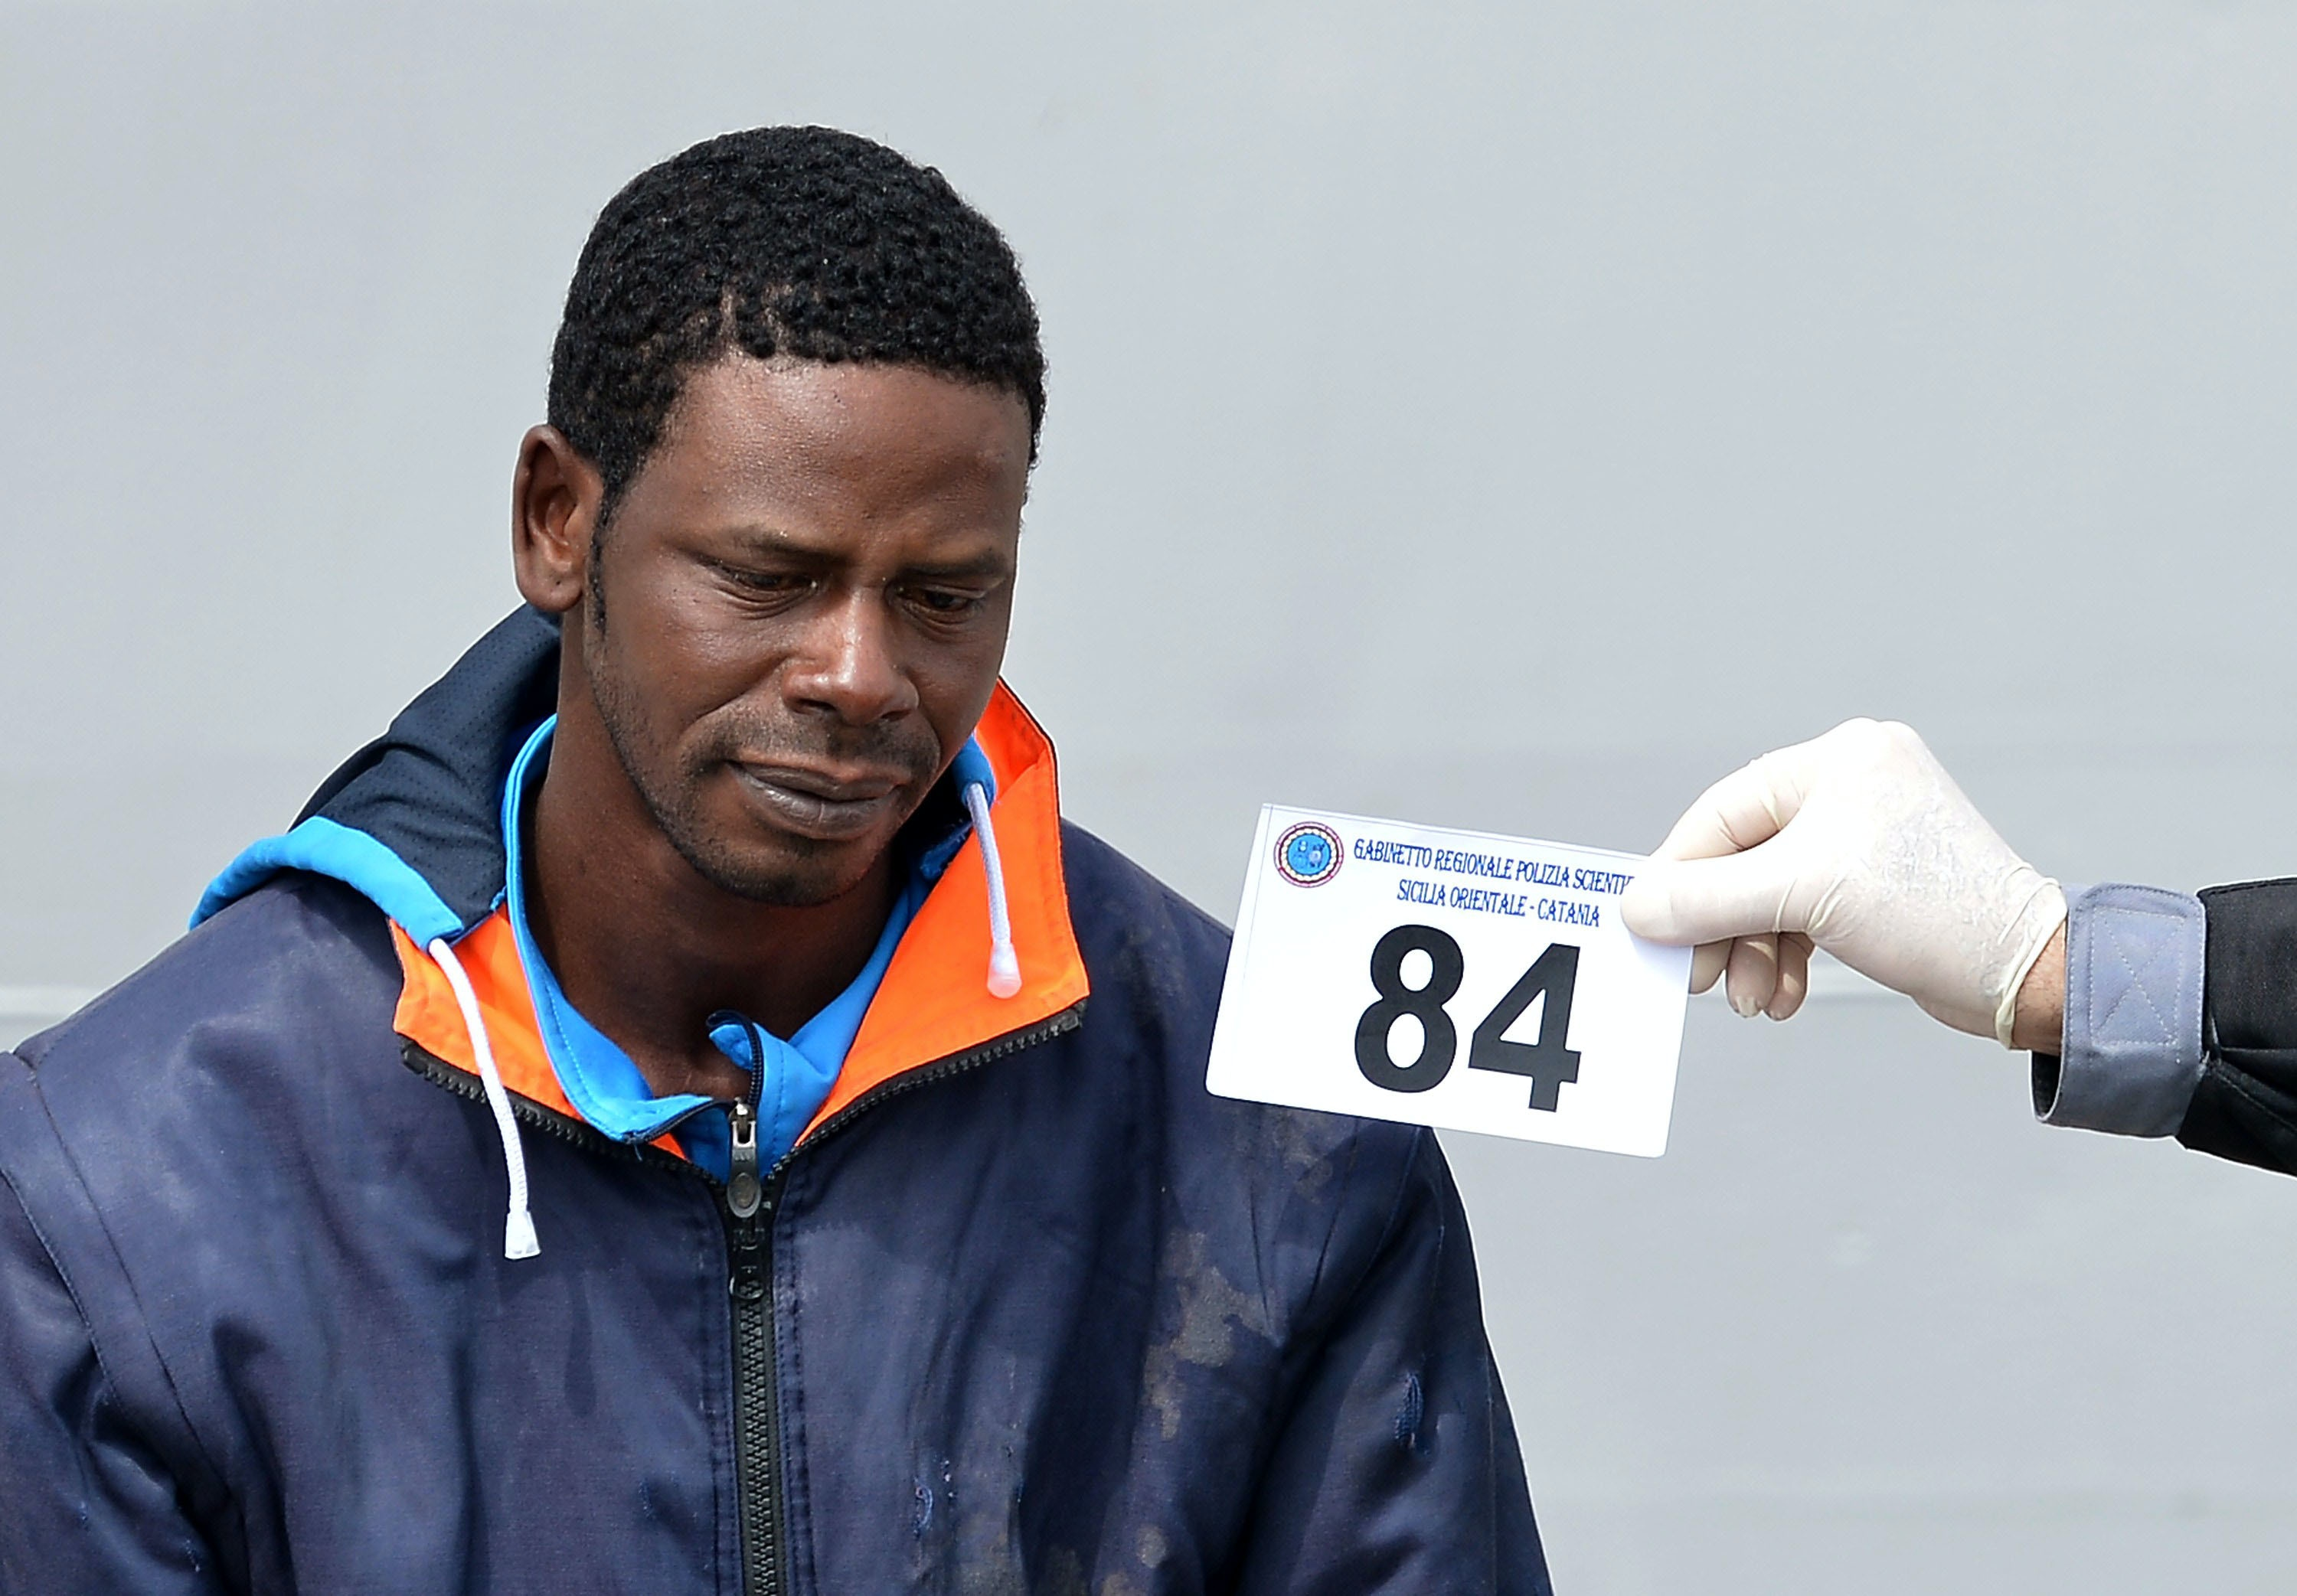 Italian police officers identify a migrant suspected to be a smuggler after disembarking off the Italian Guardia Costiera vessel Fiorillo at the Sicilian harbour of Catania on April 24, 2015. EU leaders gathered in Brussels on April 23 considered launching a military operation against human traffickers in Libya, in a bold effort to halt the deadly flow of refugees trying to reach Europe by sea. AFP PHOTO / ALBERTO PIZZOLI        (Photo credit should read ALBERTO PIZZOLI/AFP/Getty Images)